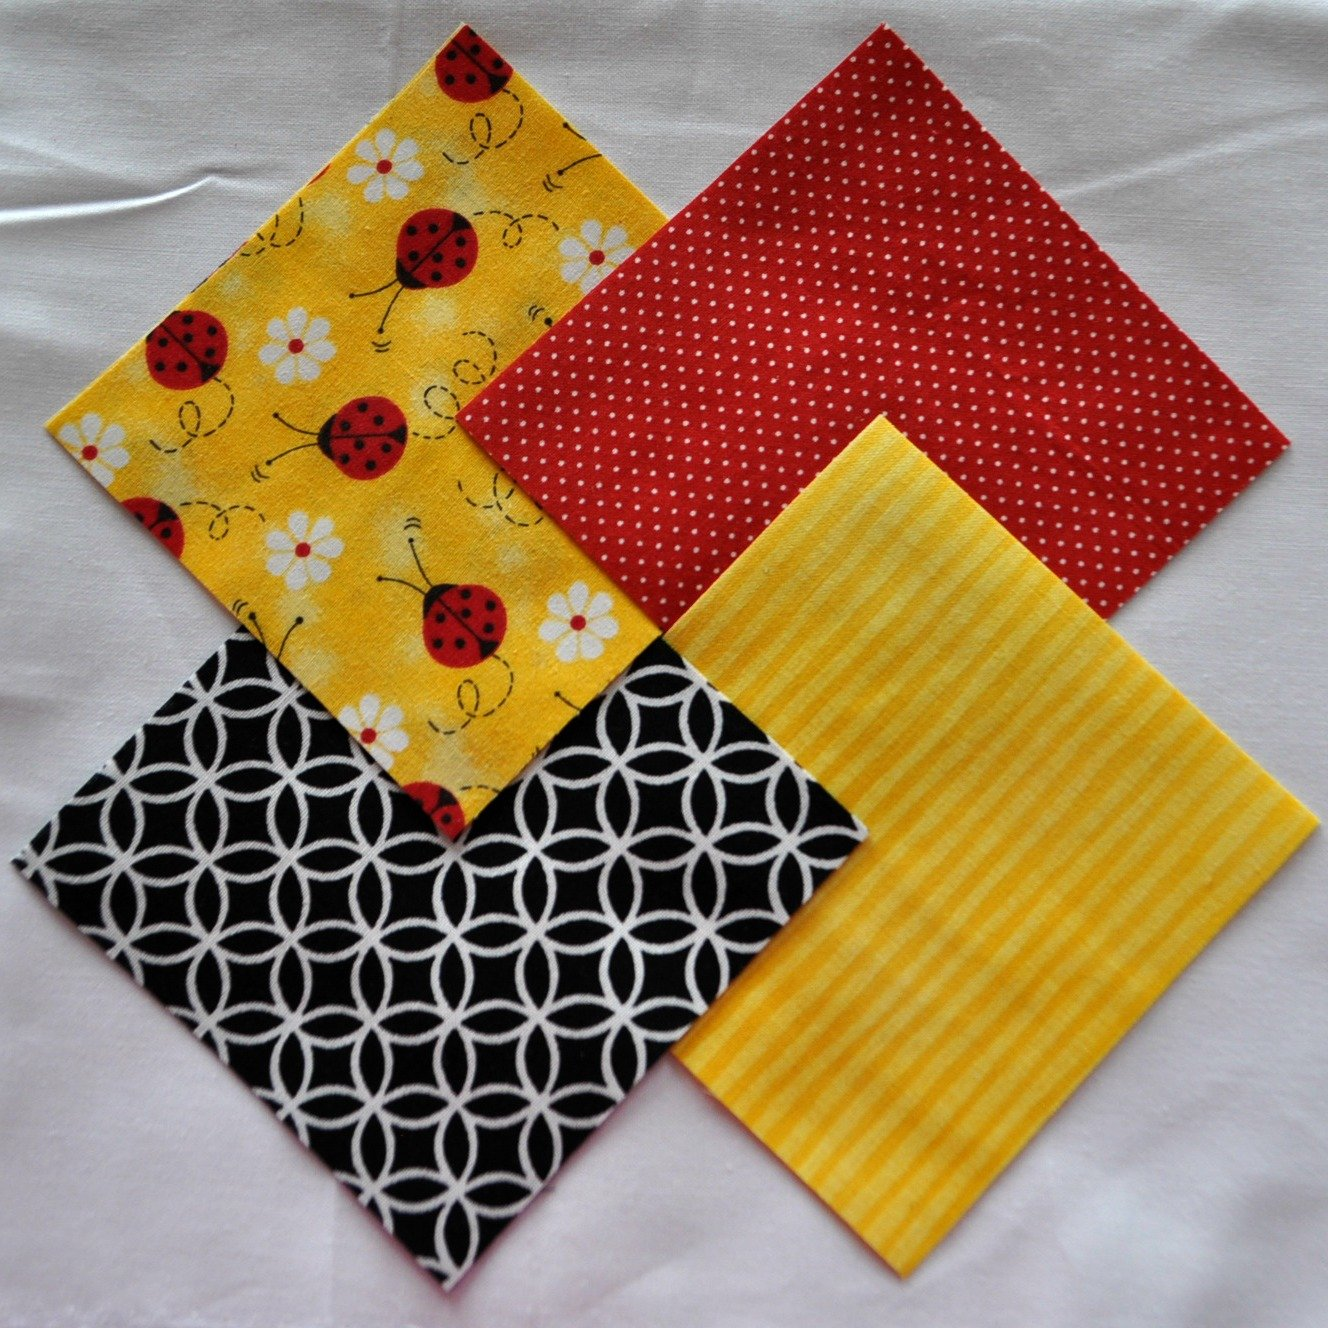 Ladybugs 4 Fabric Squares Charm Pack 100% Cotton, 40 Pieces Mixed manufacturers